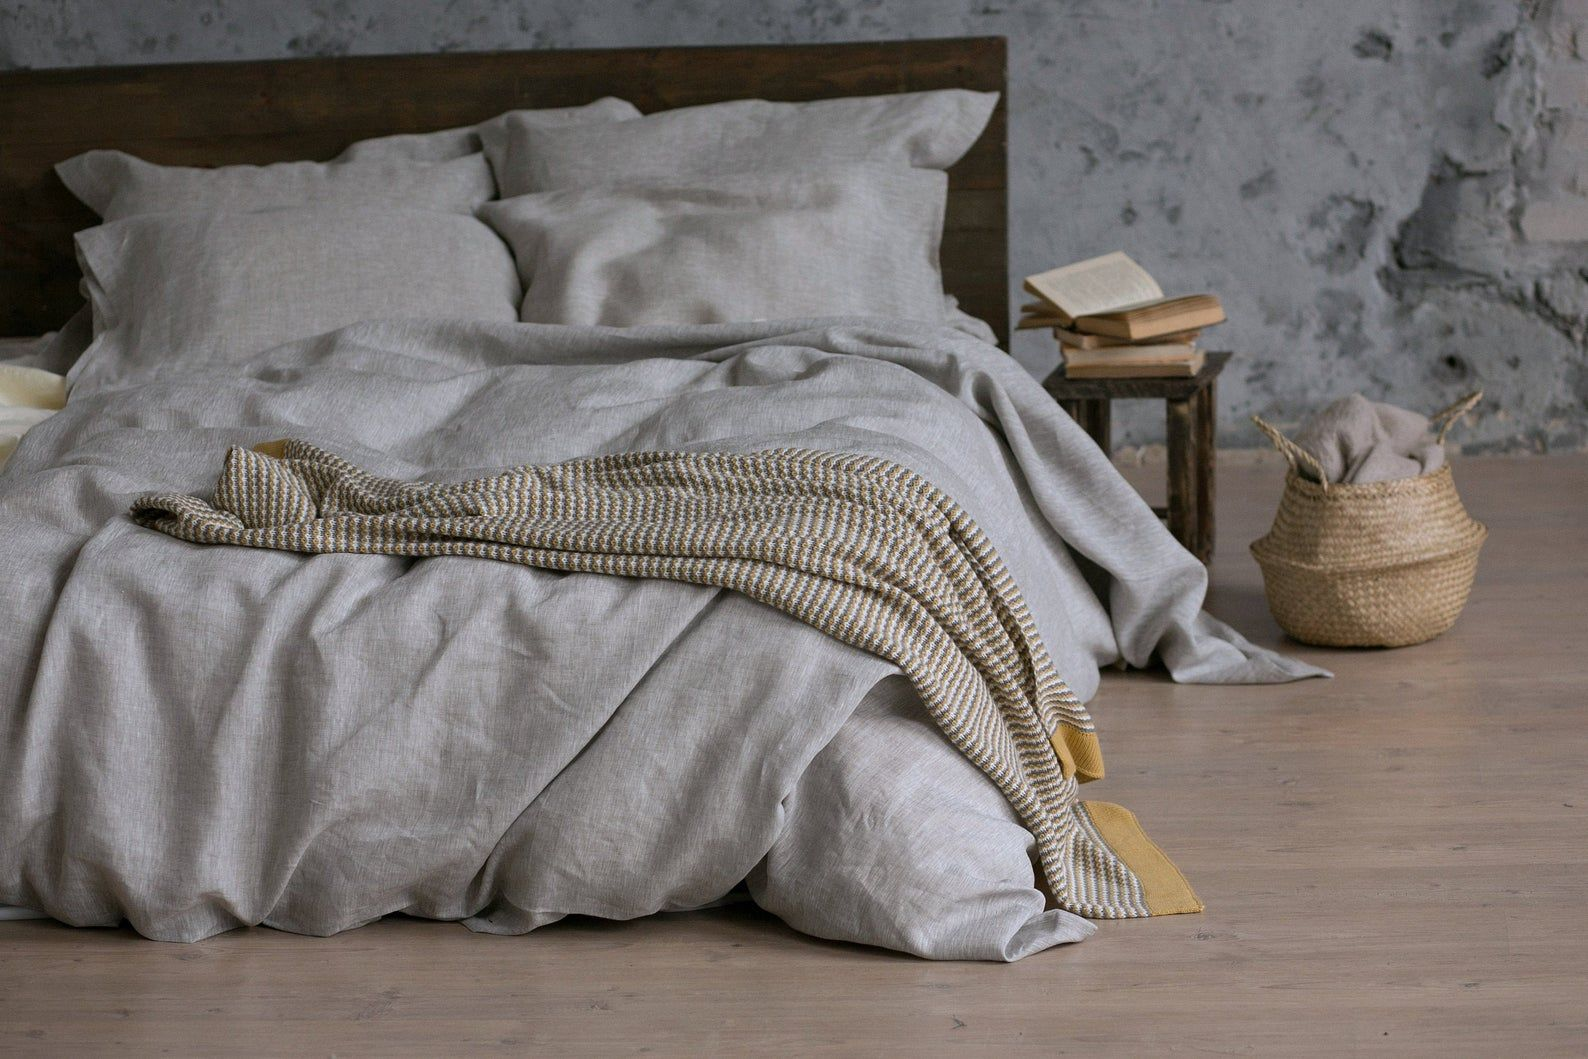 Natural linen bedding in a soothing